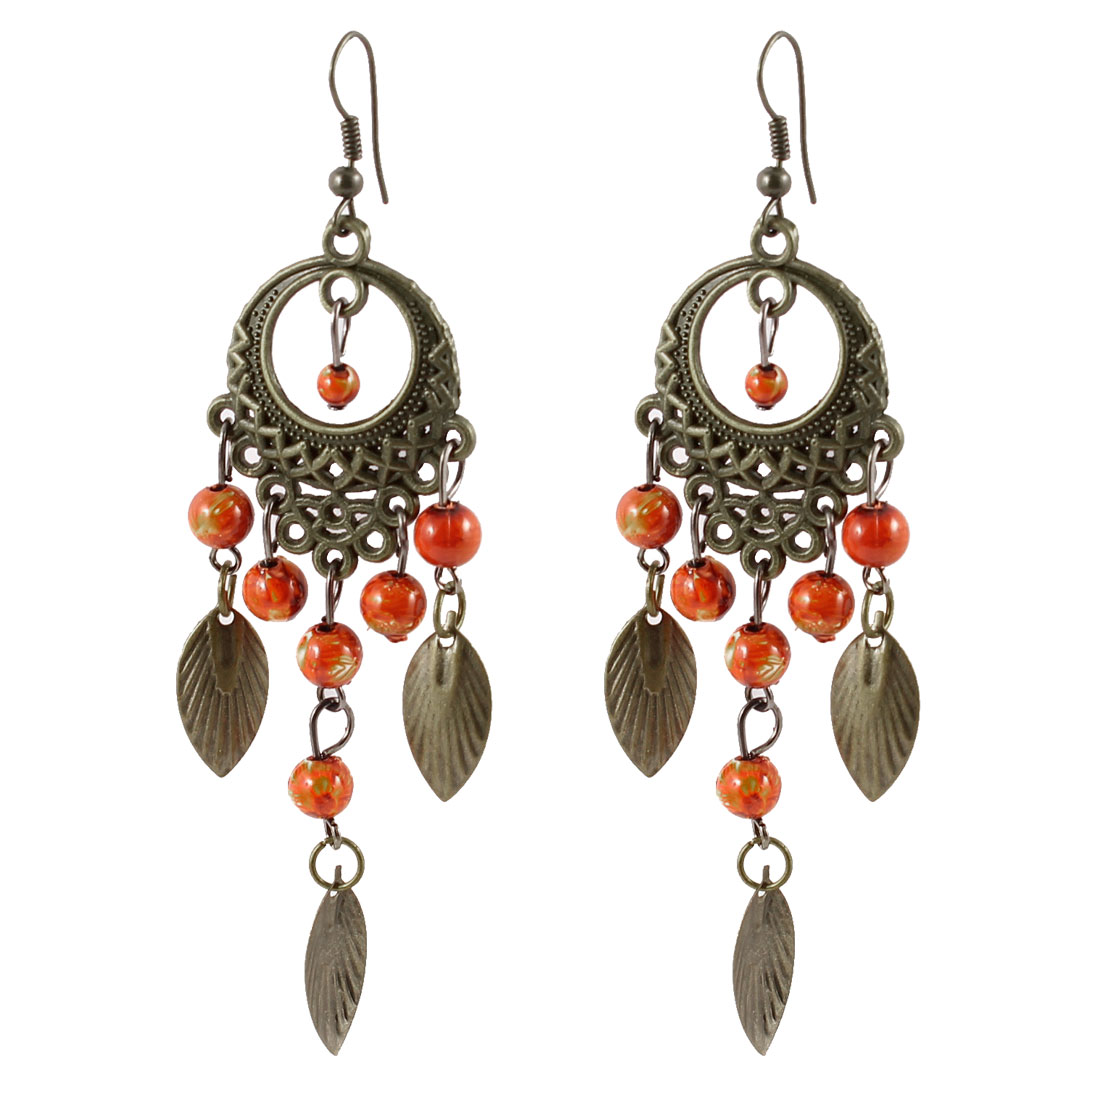 Lady Orange Beads Bronze Tone Leaf Pendant Fish Hook Earrings Pair